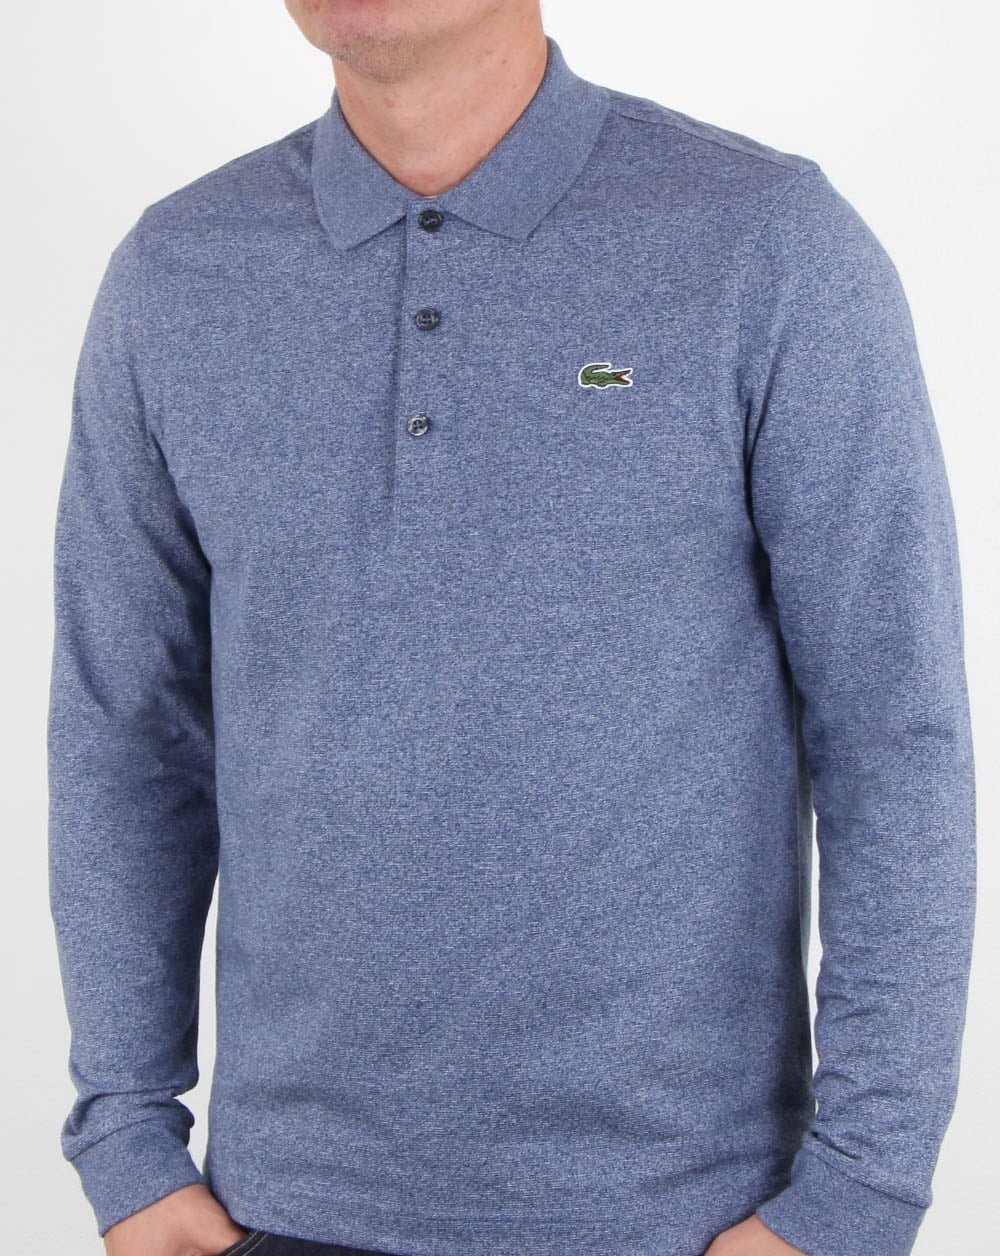 2a607ffb Lacoste Long Sleeve Polo Shirt Merino Jaspe